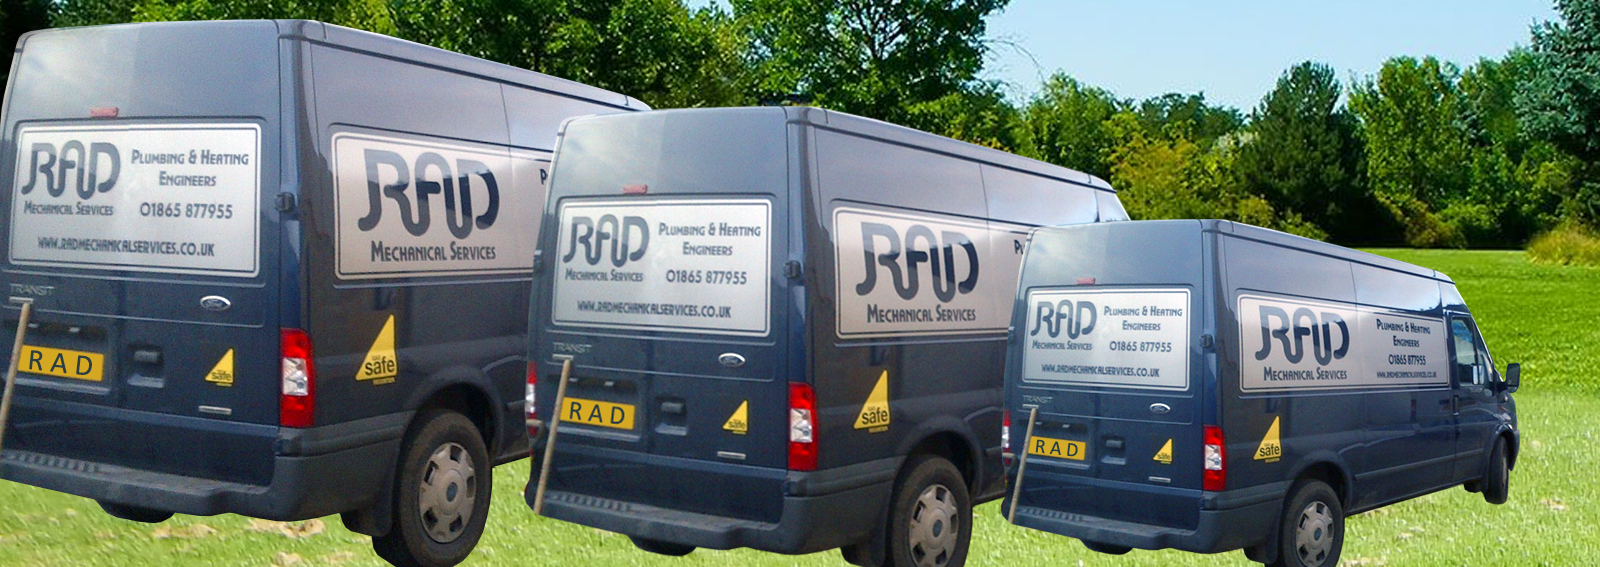 RAD Mechanical Services